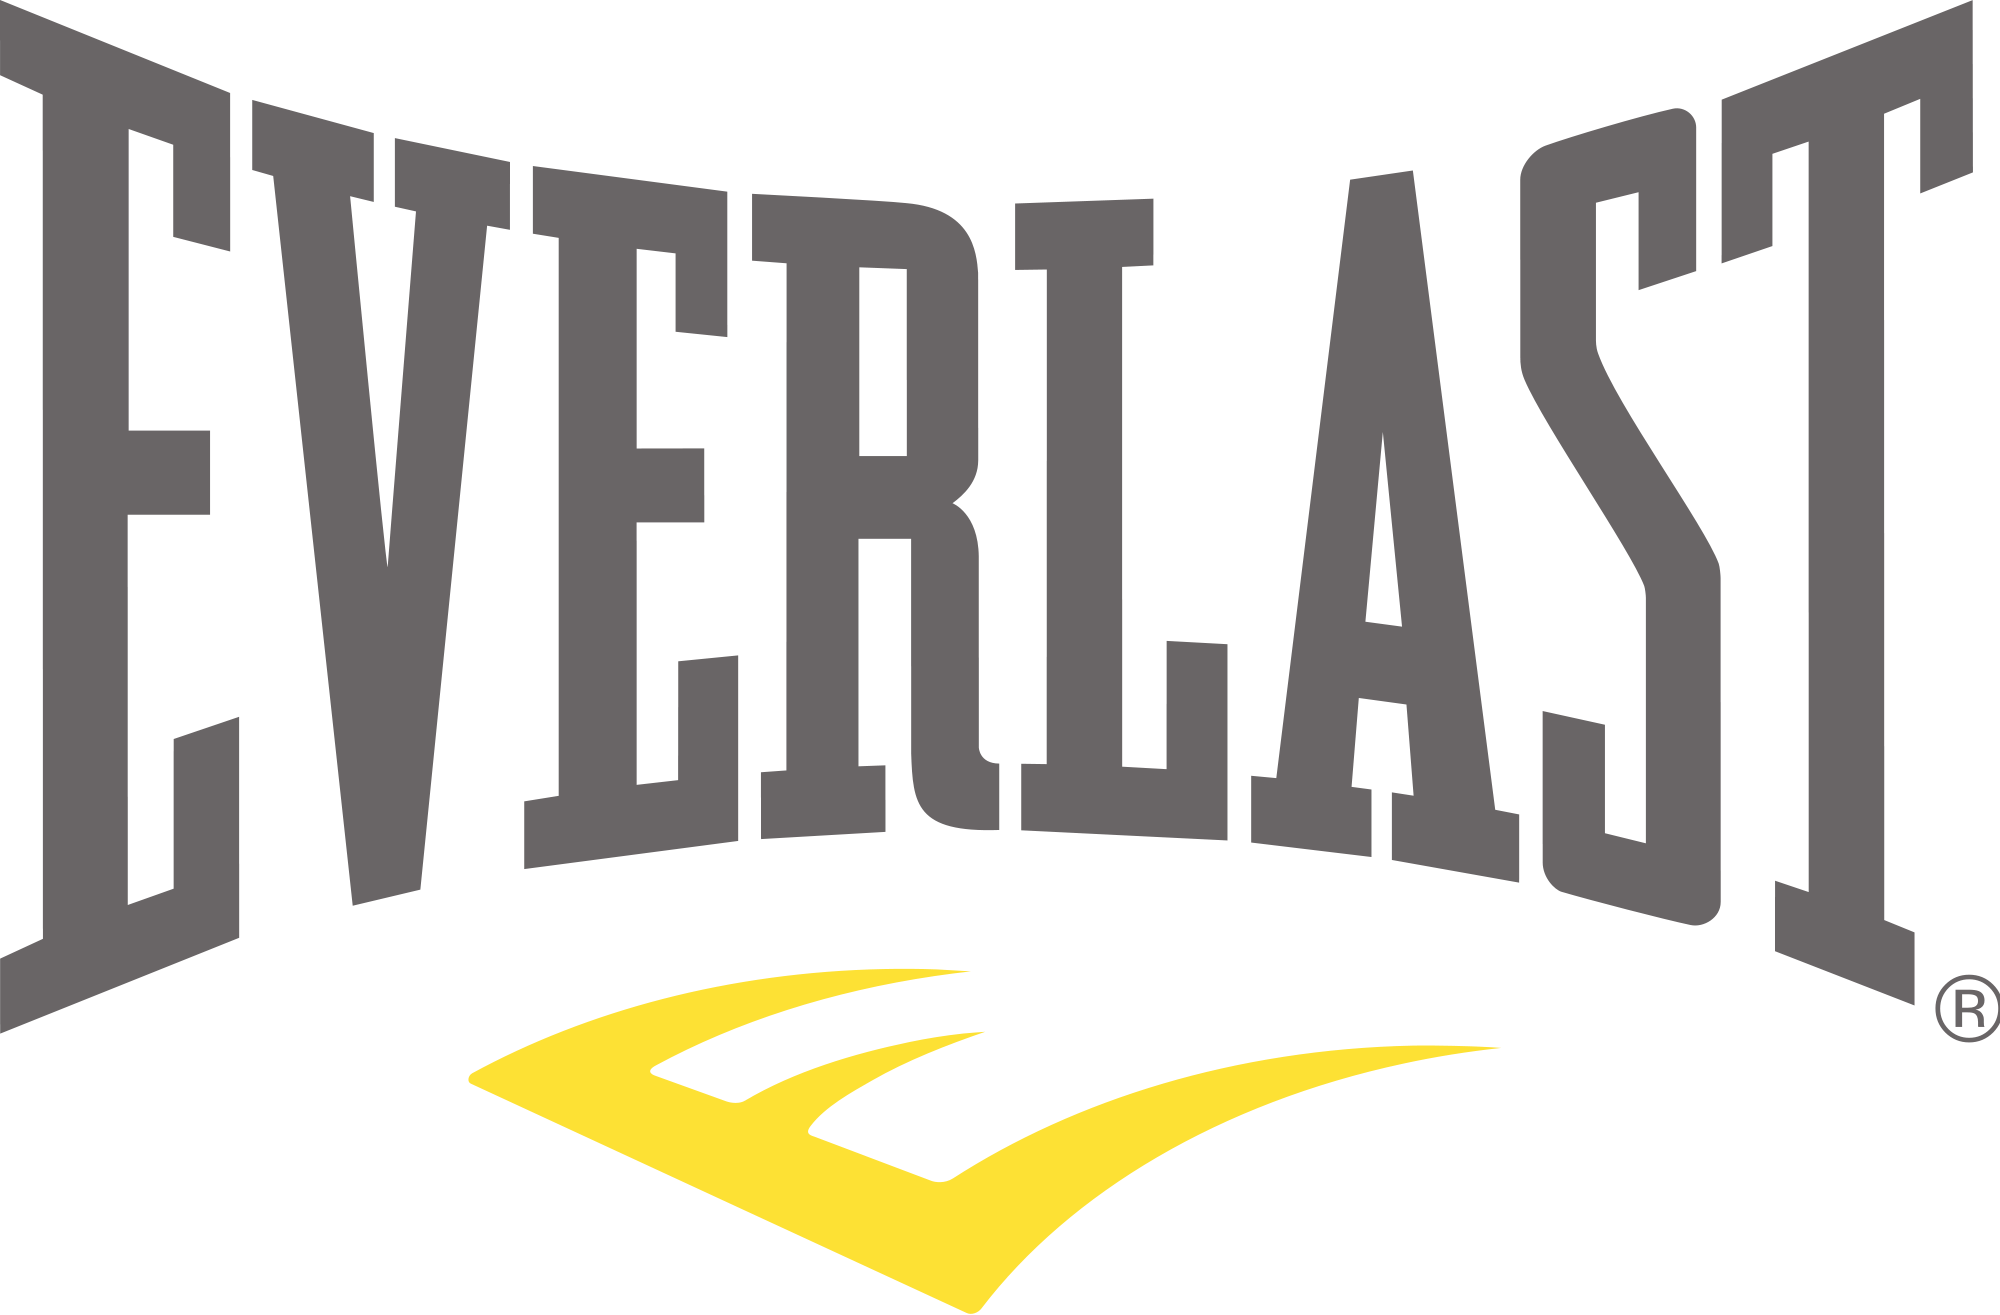 Everlast - Microsoft Dynamics AX and Magento Integration Success Story